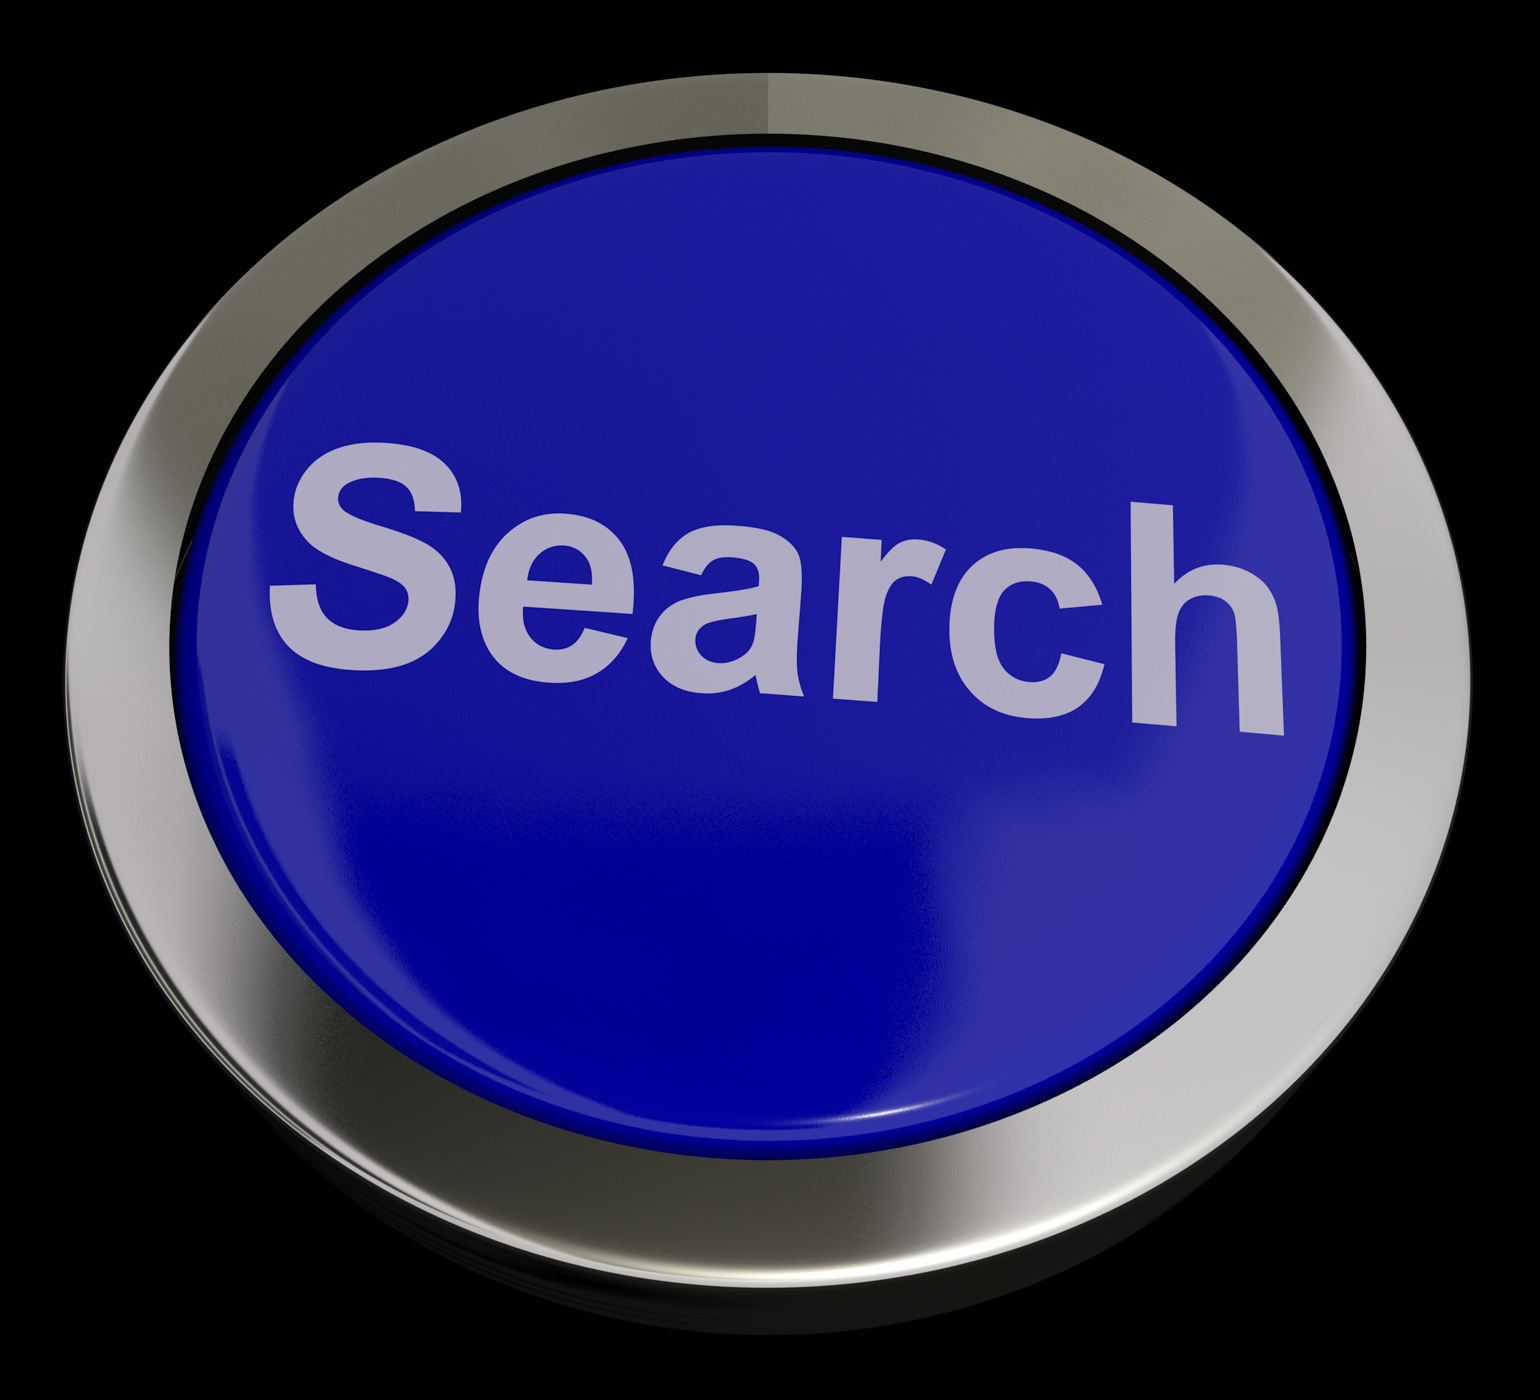 Search button showing internet access and online research photo